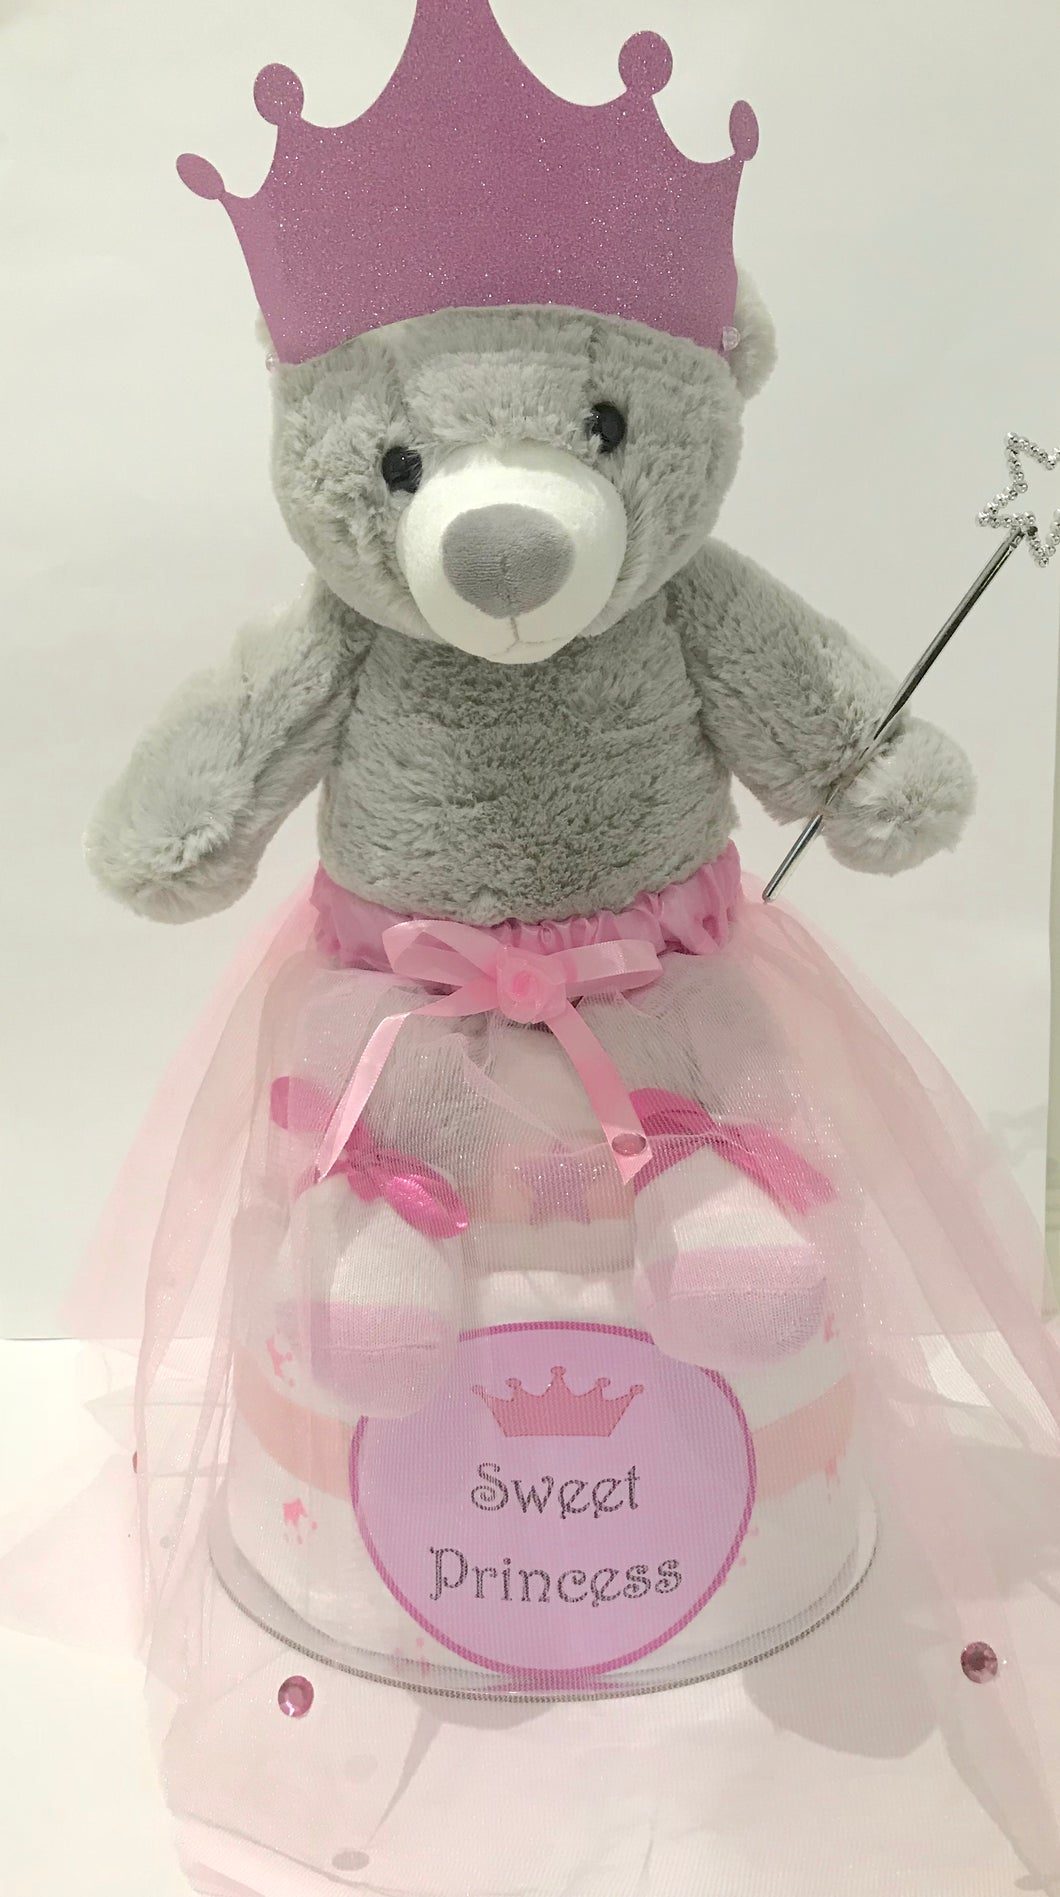 Princess girl pink nappy cake baby gift